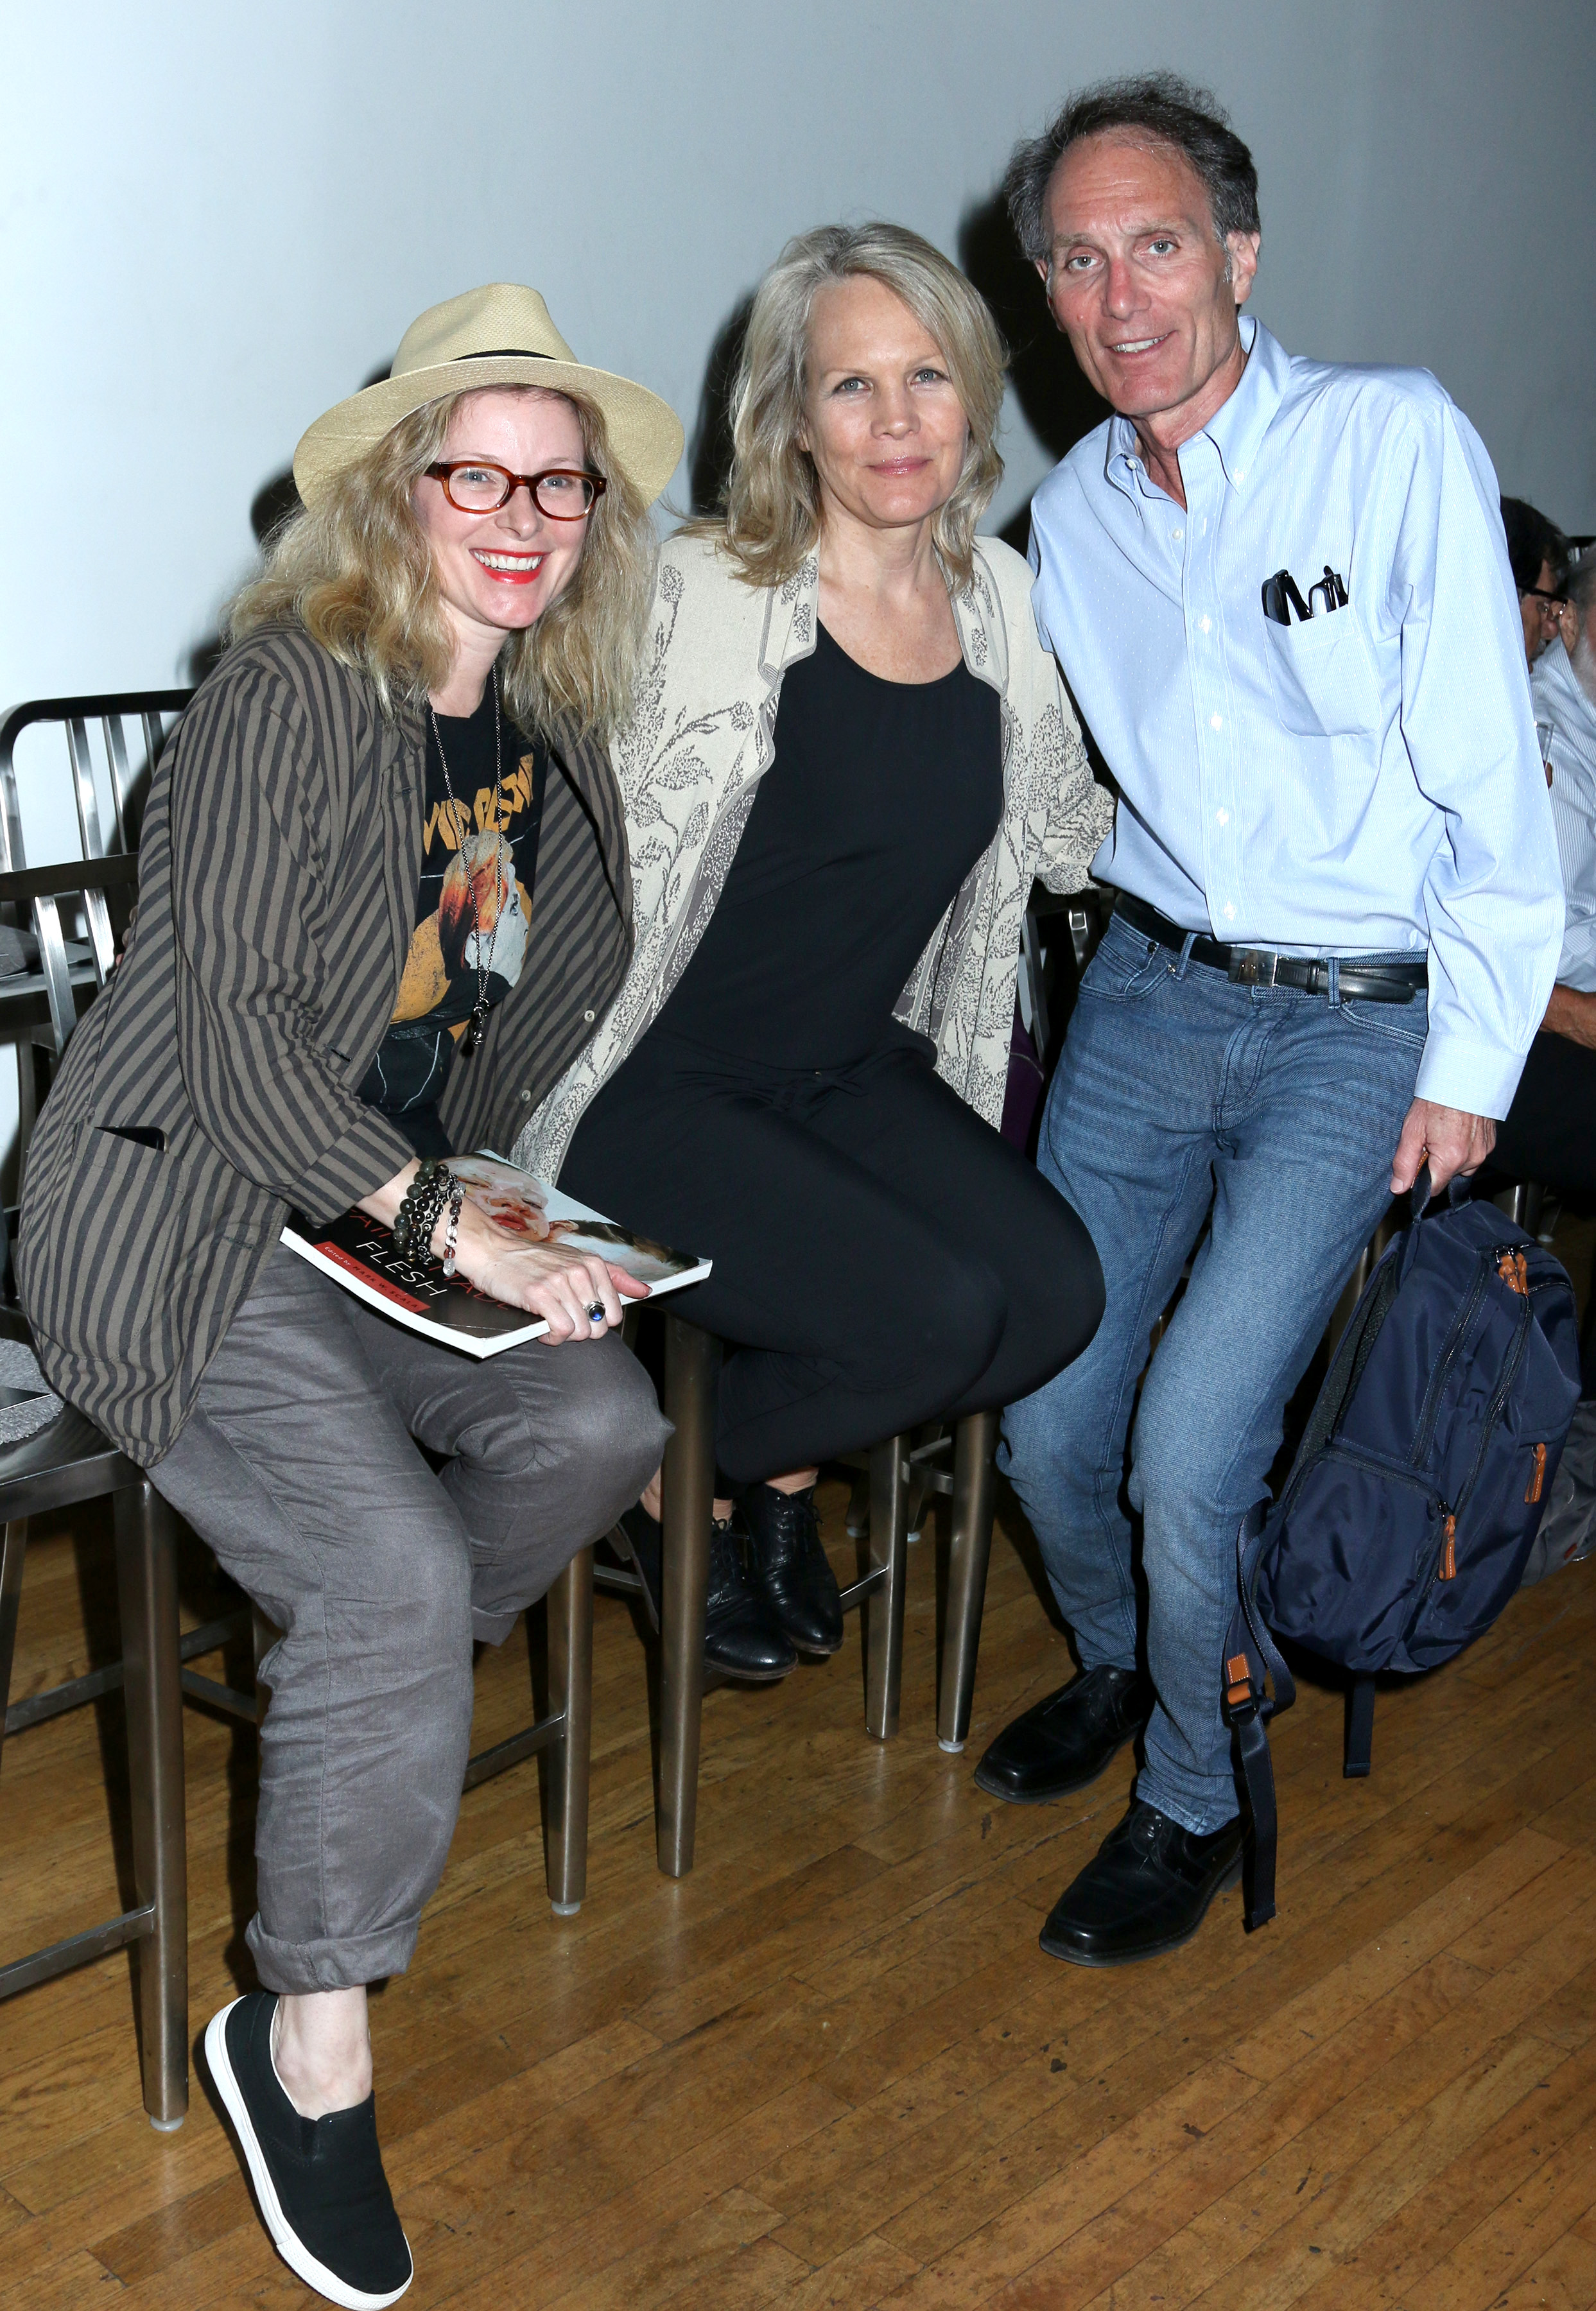 Director Cady McClain with photographer/actor Donna Svennevick and Director Christopher Goutman